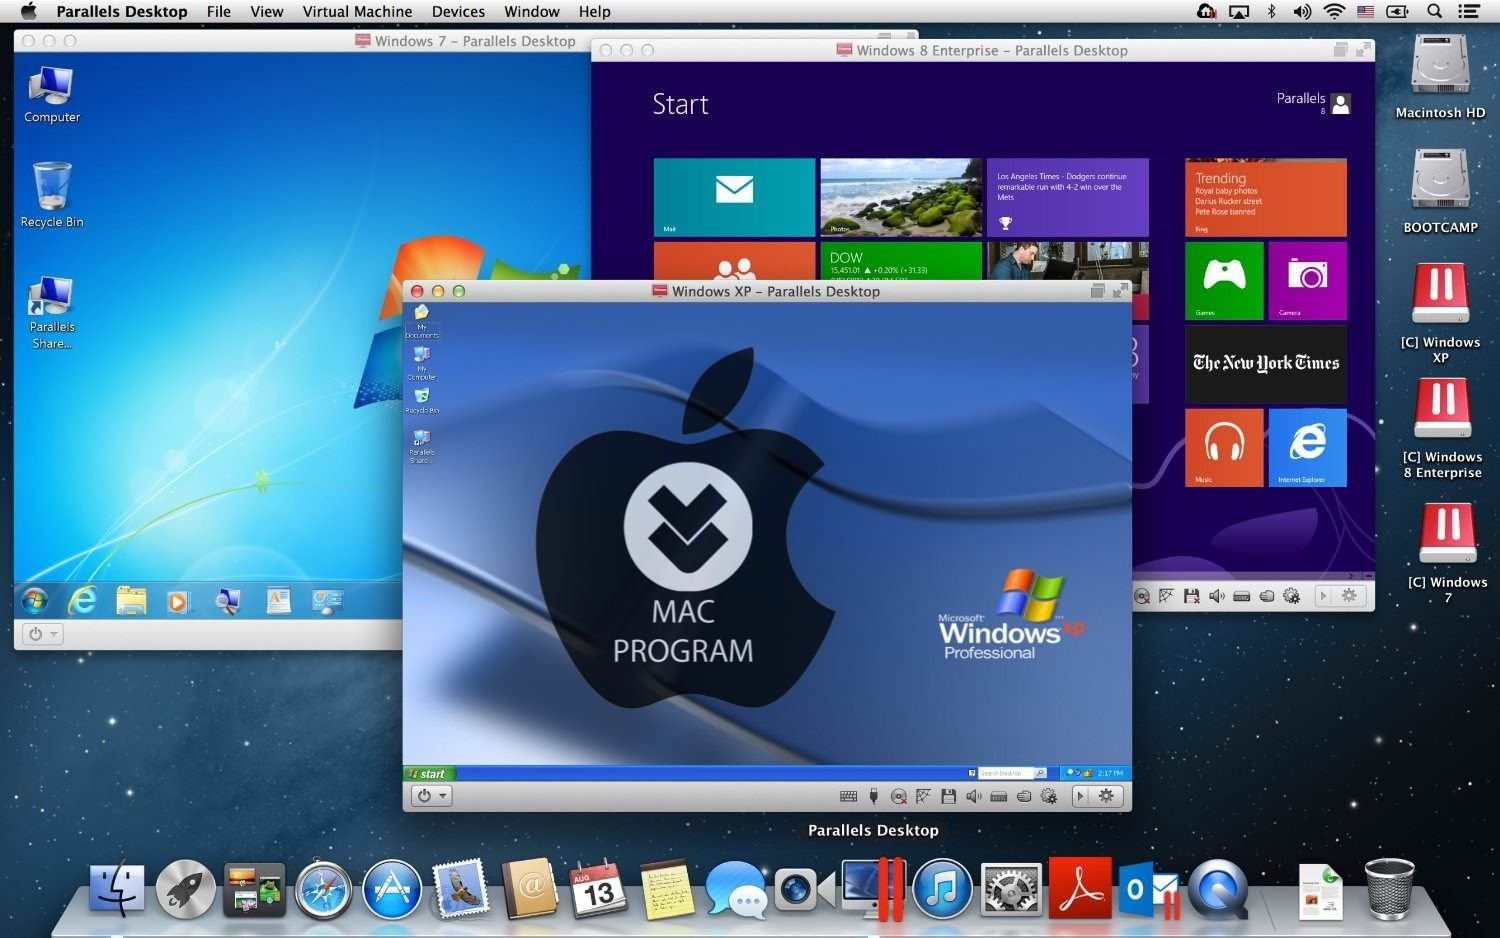 Mac Parallels Desktop Business Edition v13.3.0